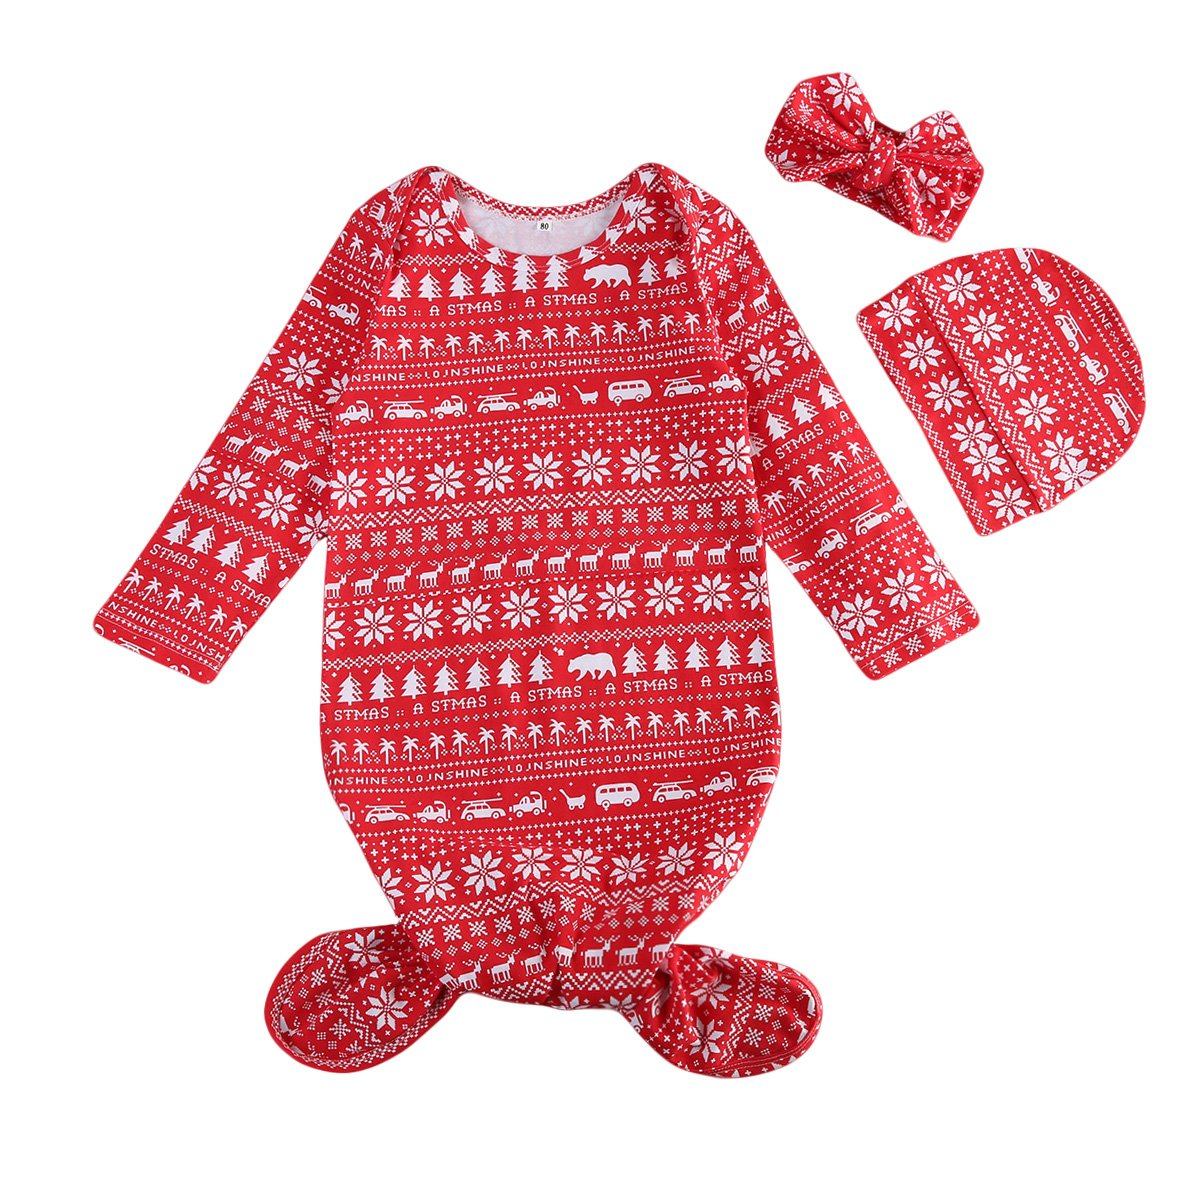 3PCS Newborn Baby Boys and Girls Xmas Striped Gown Romper Coming Home Sleepwear Sleeping Bags Outfit